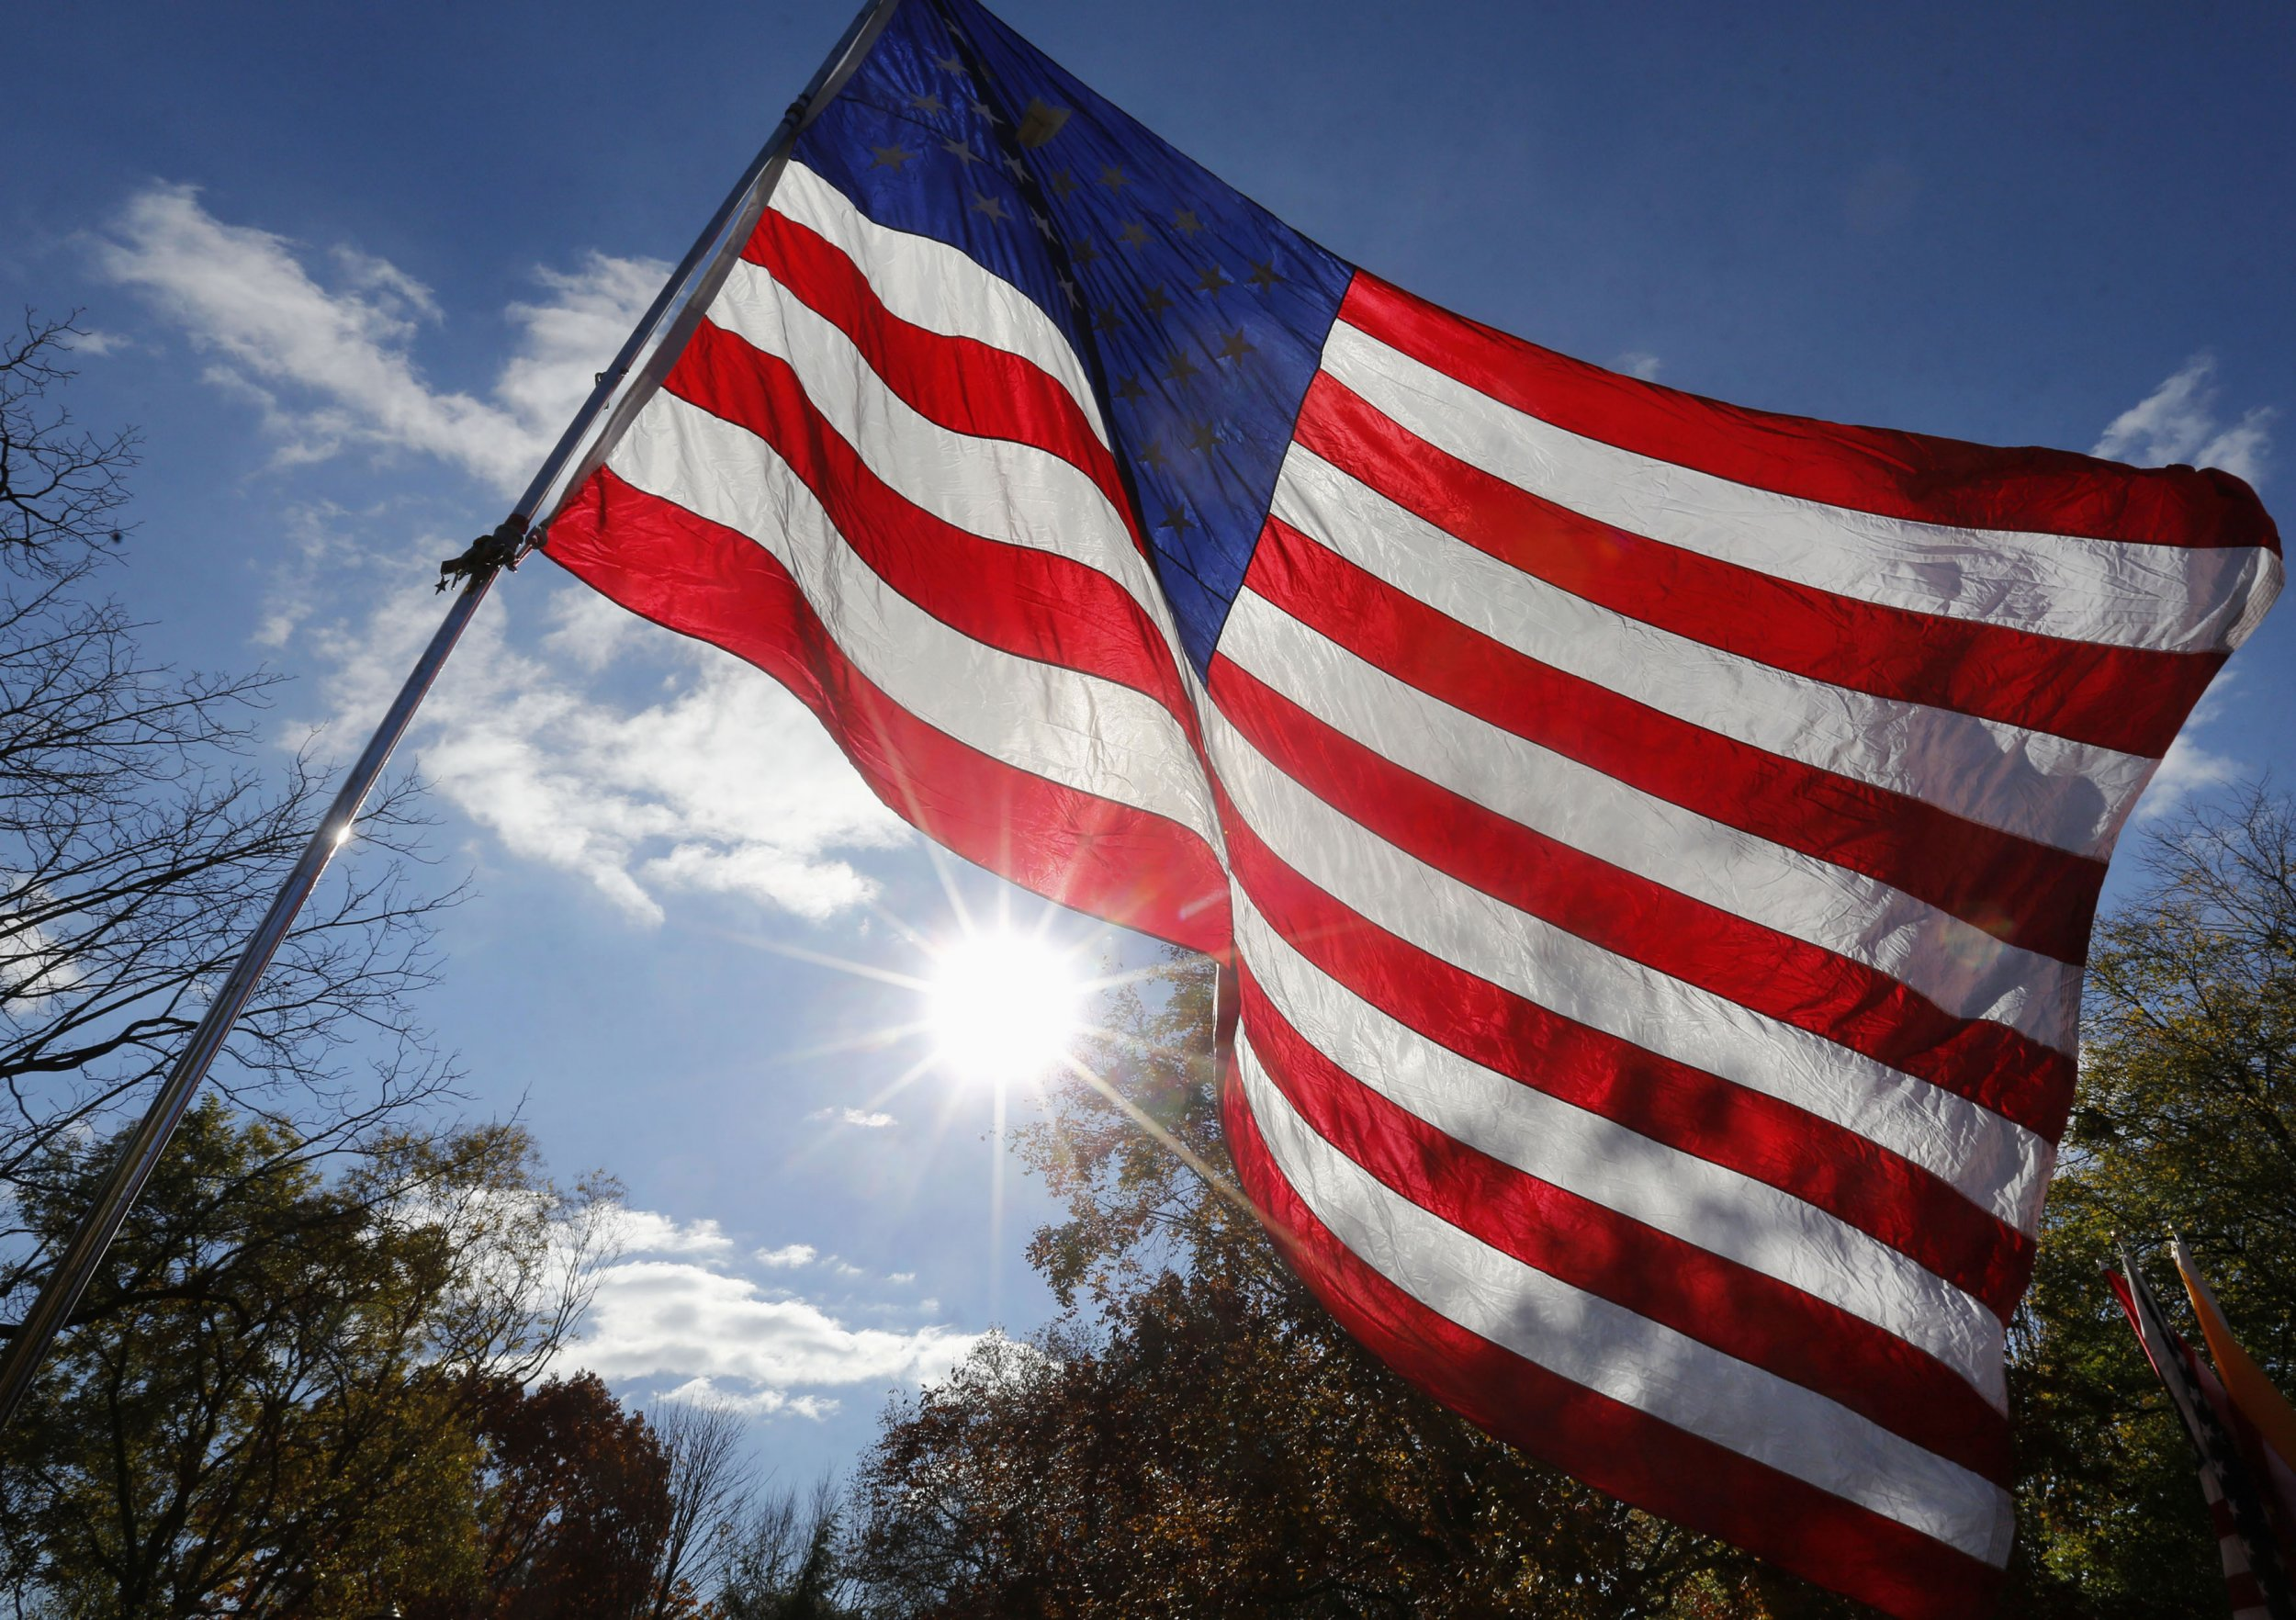 american flag and its desecration